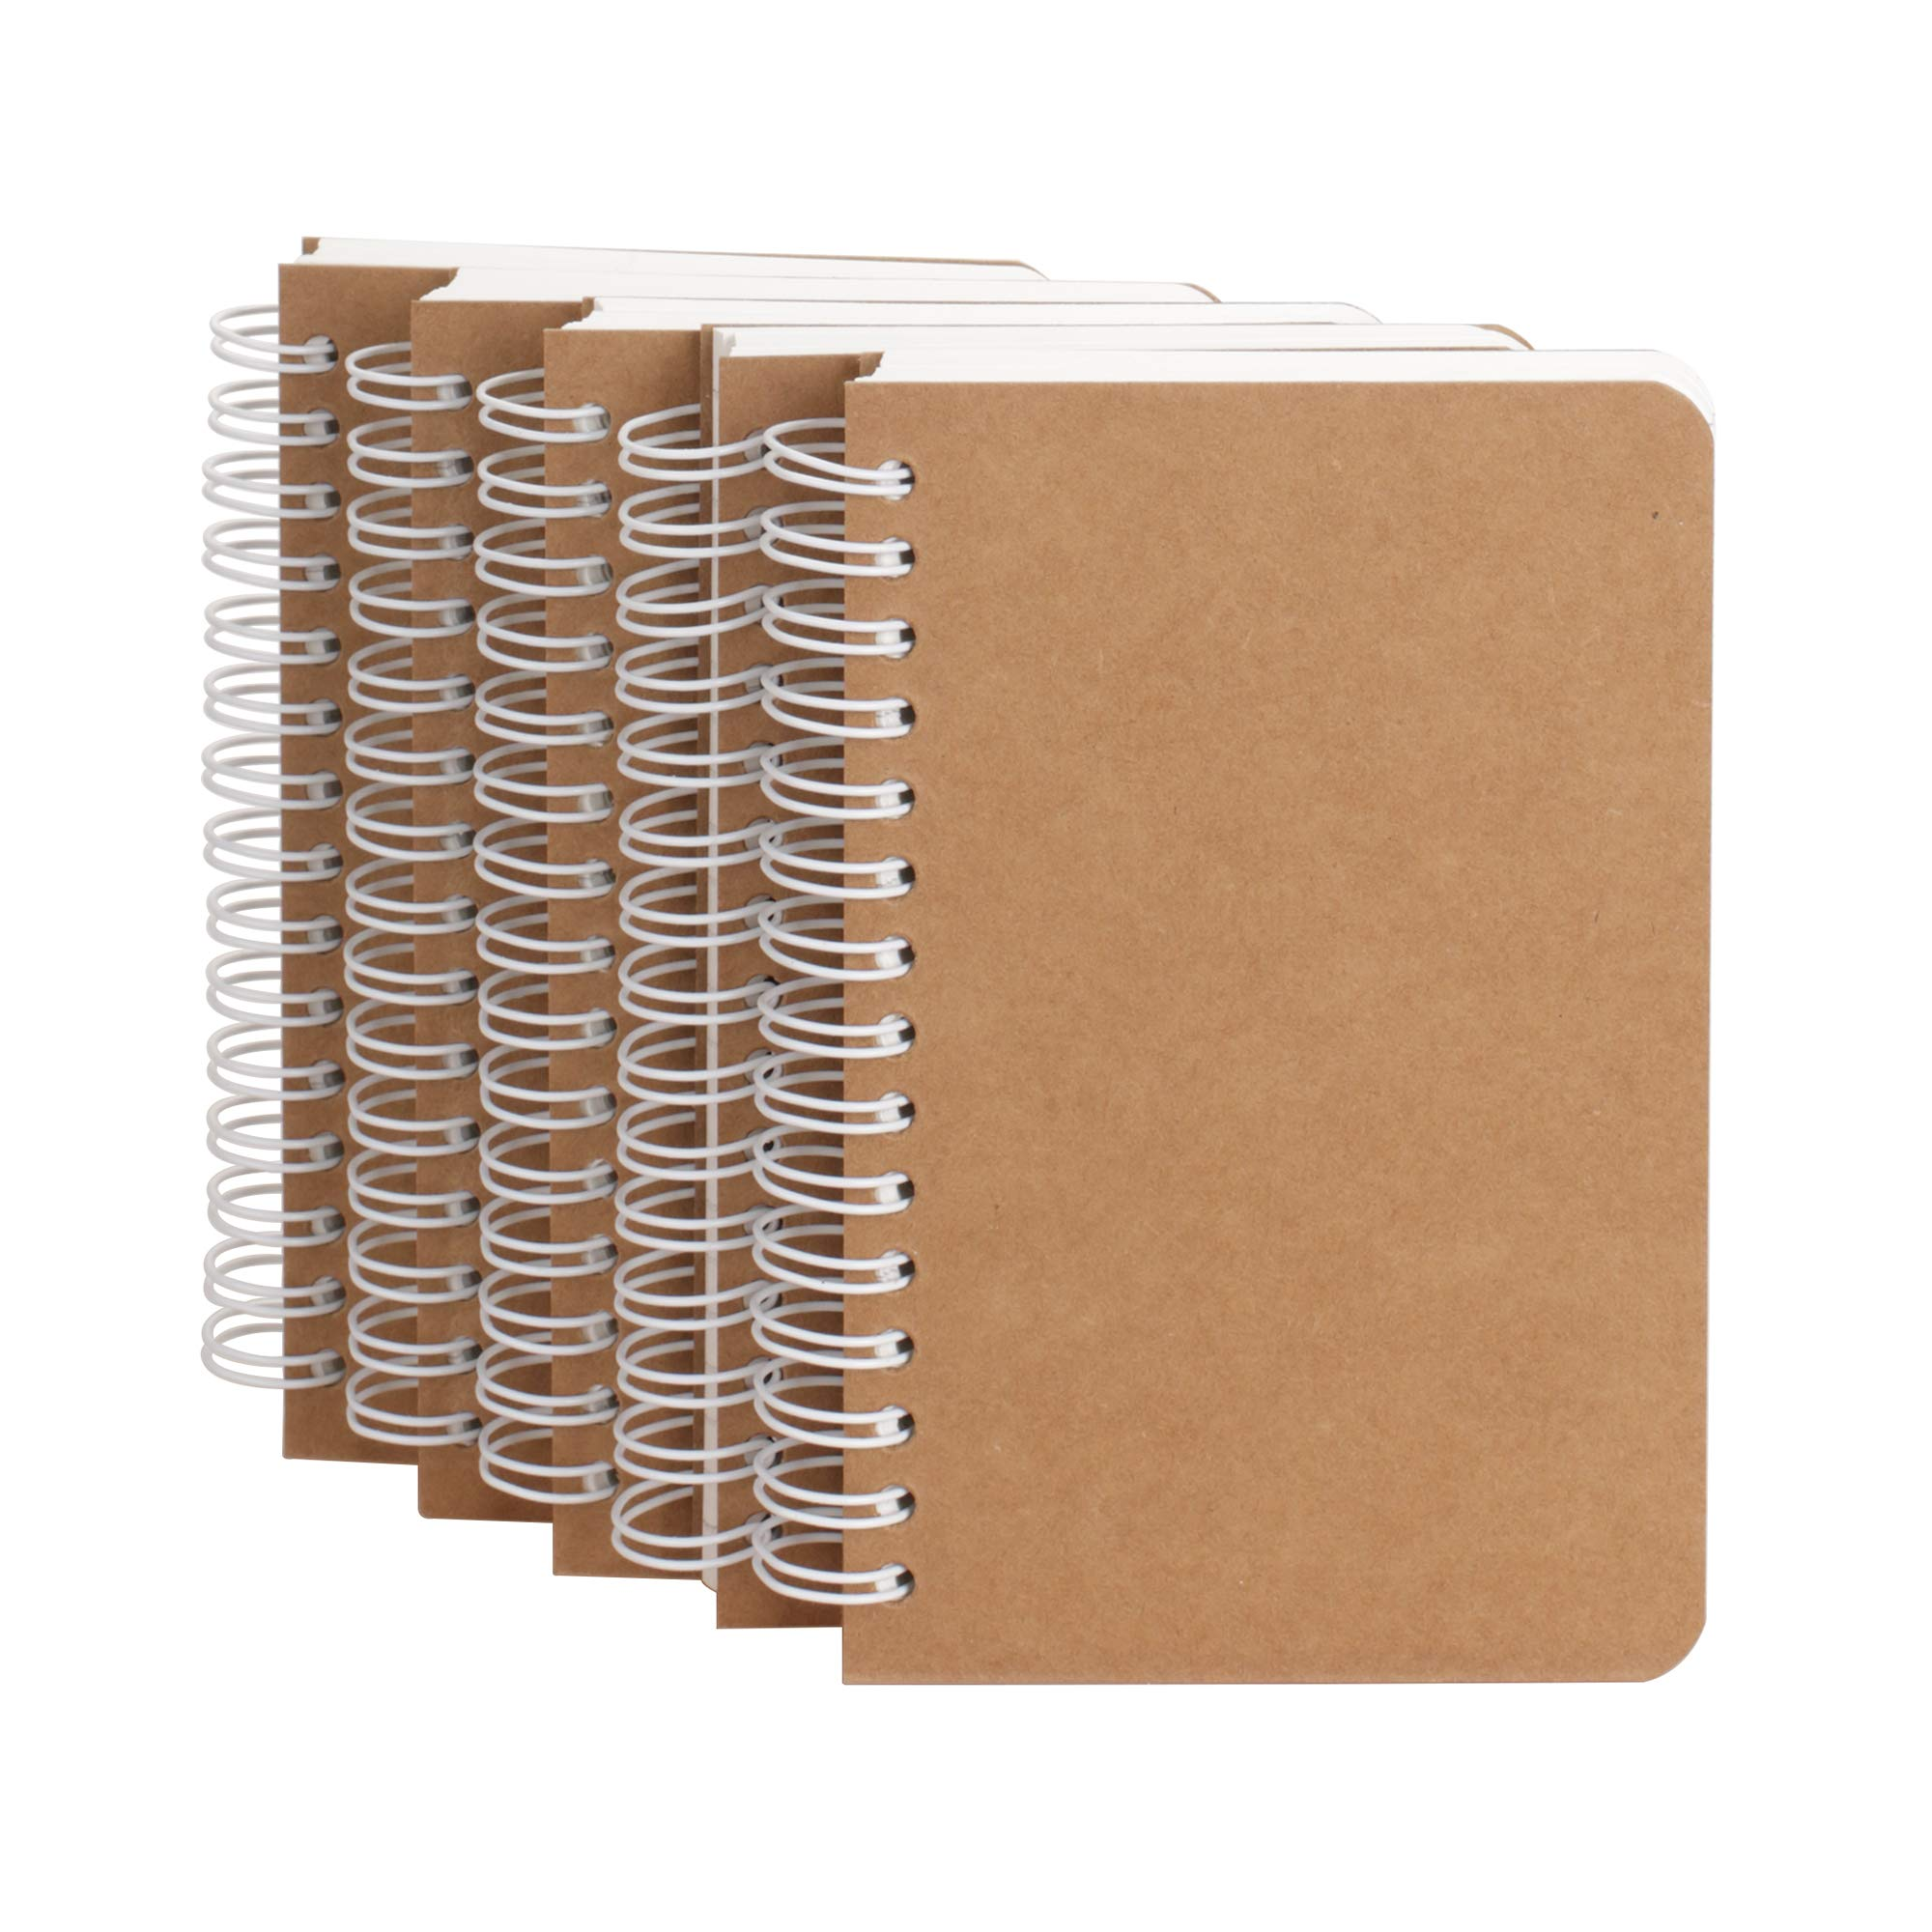 Kraft Cover Lay Flat Spiral Notebooks - Five Pack - A6 Sized - 180 Ruled Pages - 90 Sheets - Easy to Carry